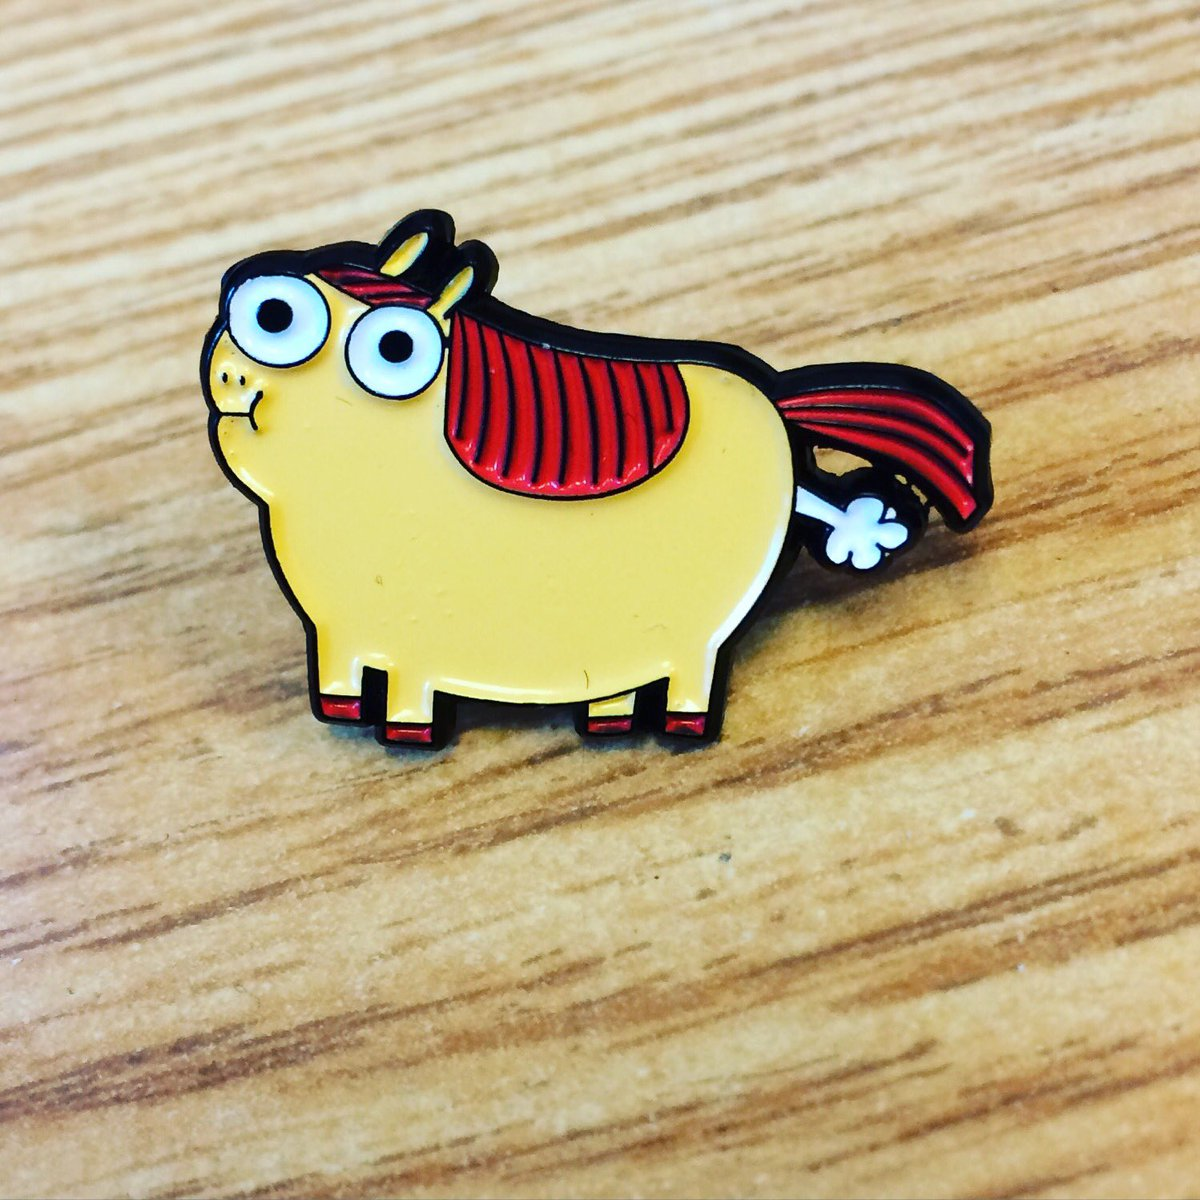 Oh my what's this?! A brand new Enamel Pin featuring @beatonna's Fat Pony? AND HE'S FARTING? In store NOW?! https://t.co/DunBq2kZT1